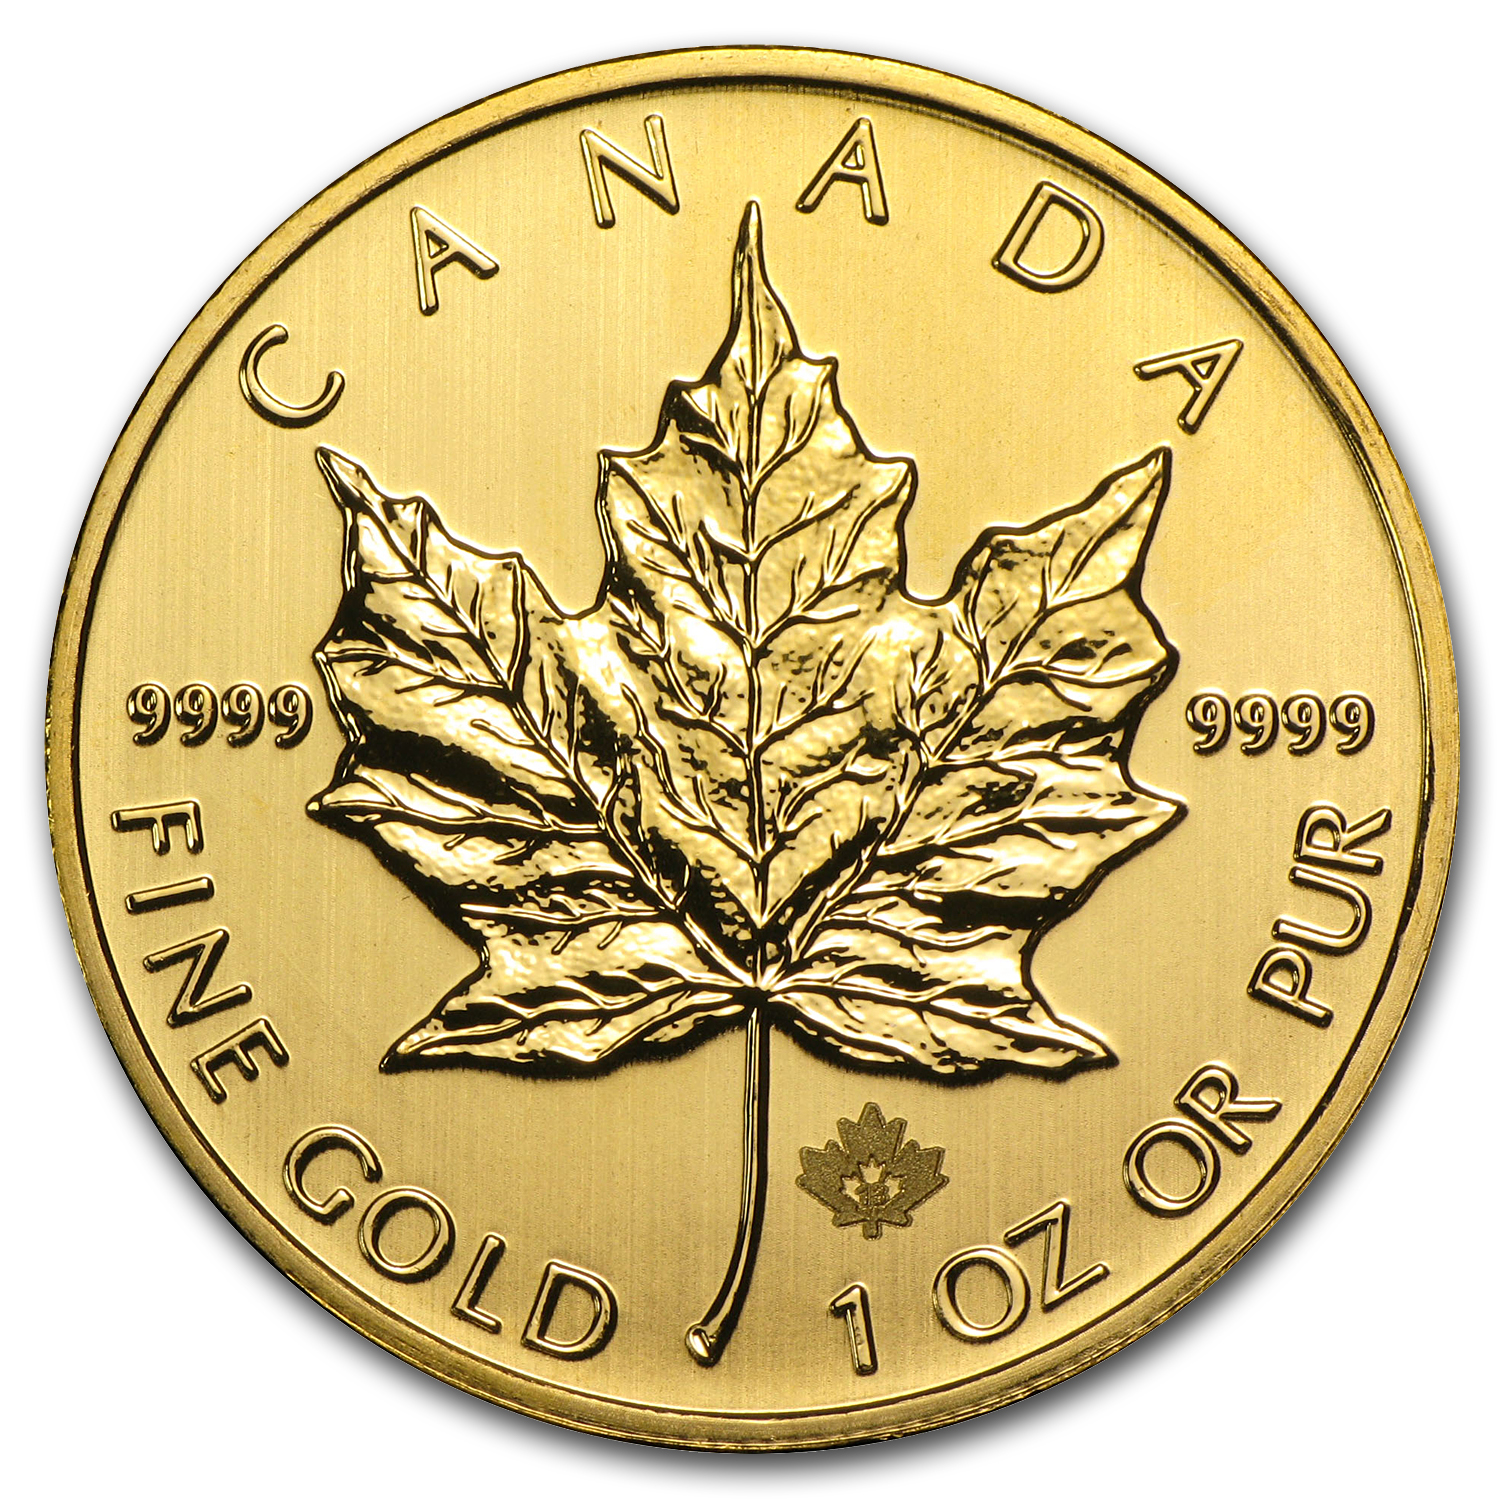 2013 Canada 1 oz Gold Maple Leaf BU